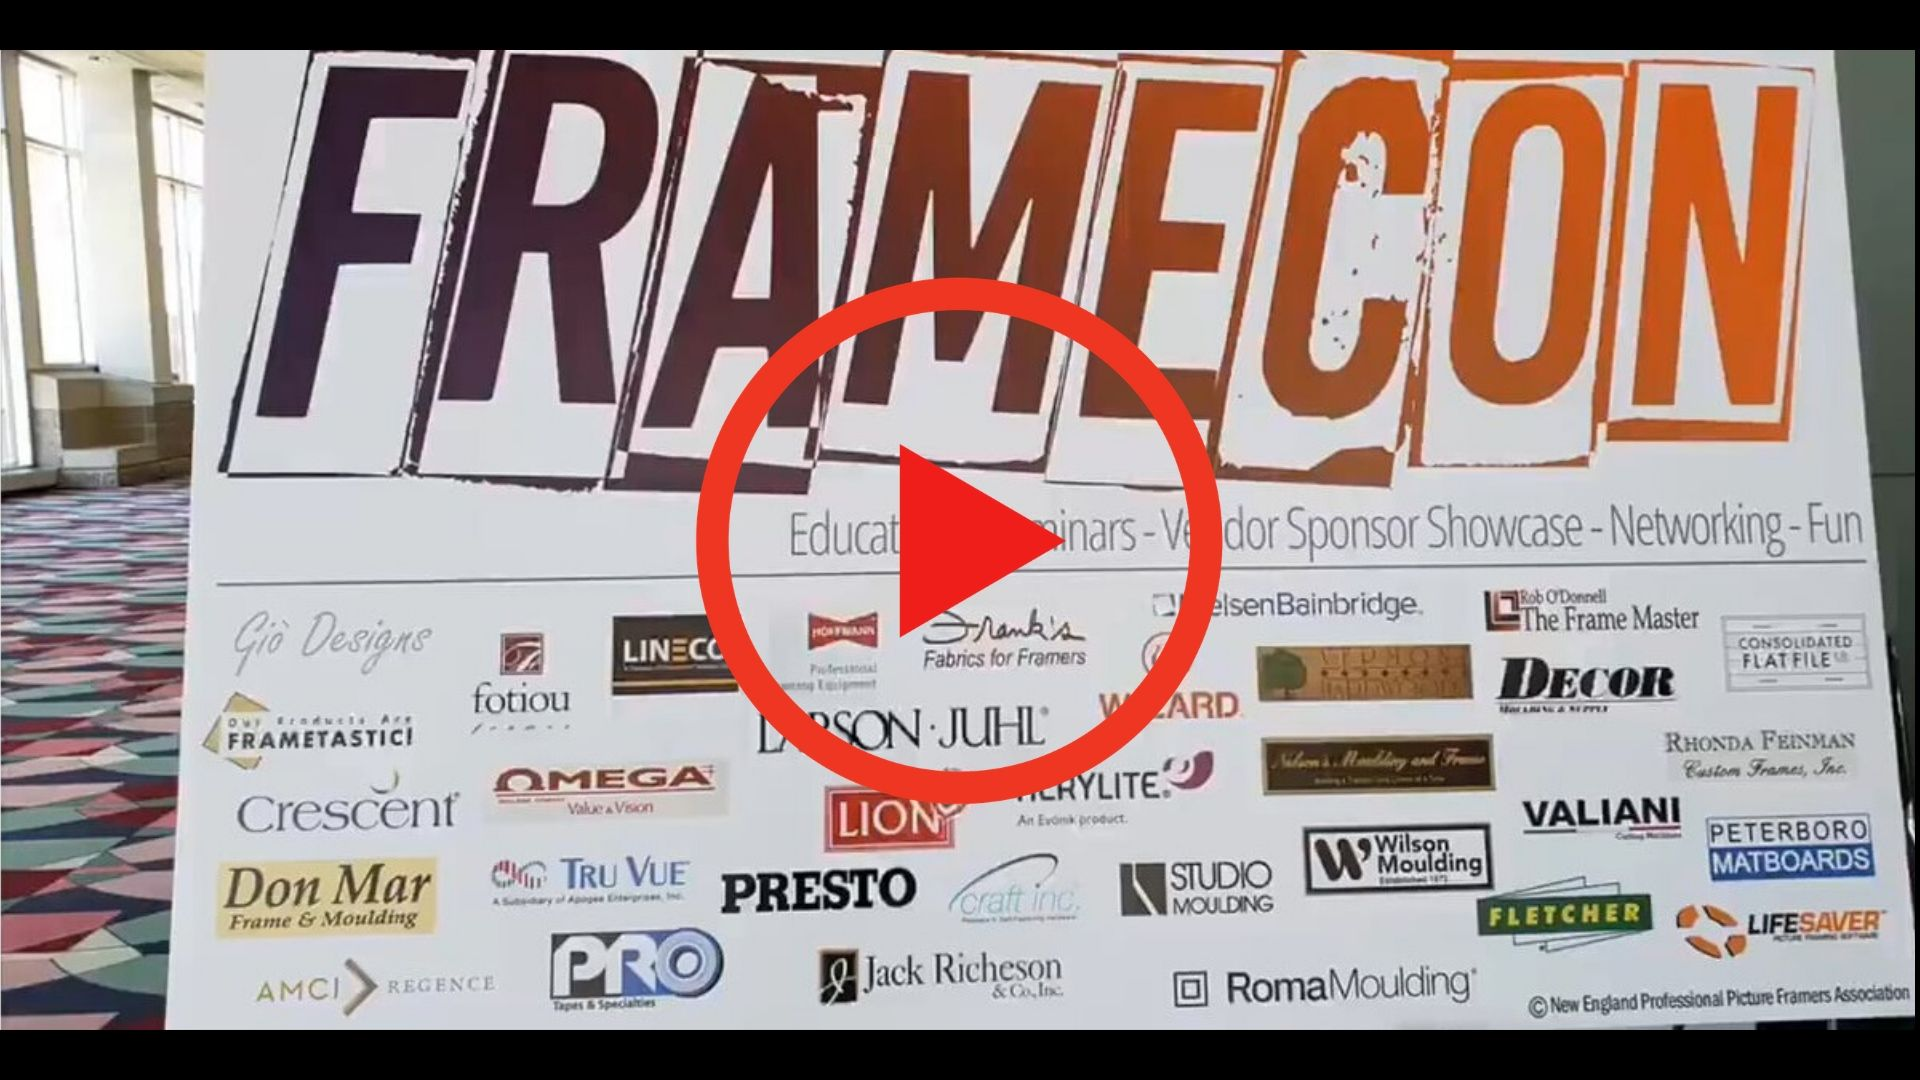 Video Compilation of Some of the Vendors at FrameCon 2019